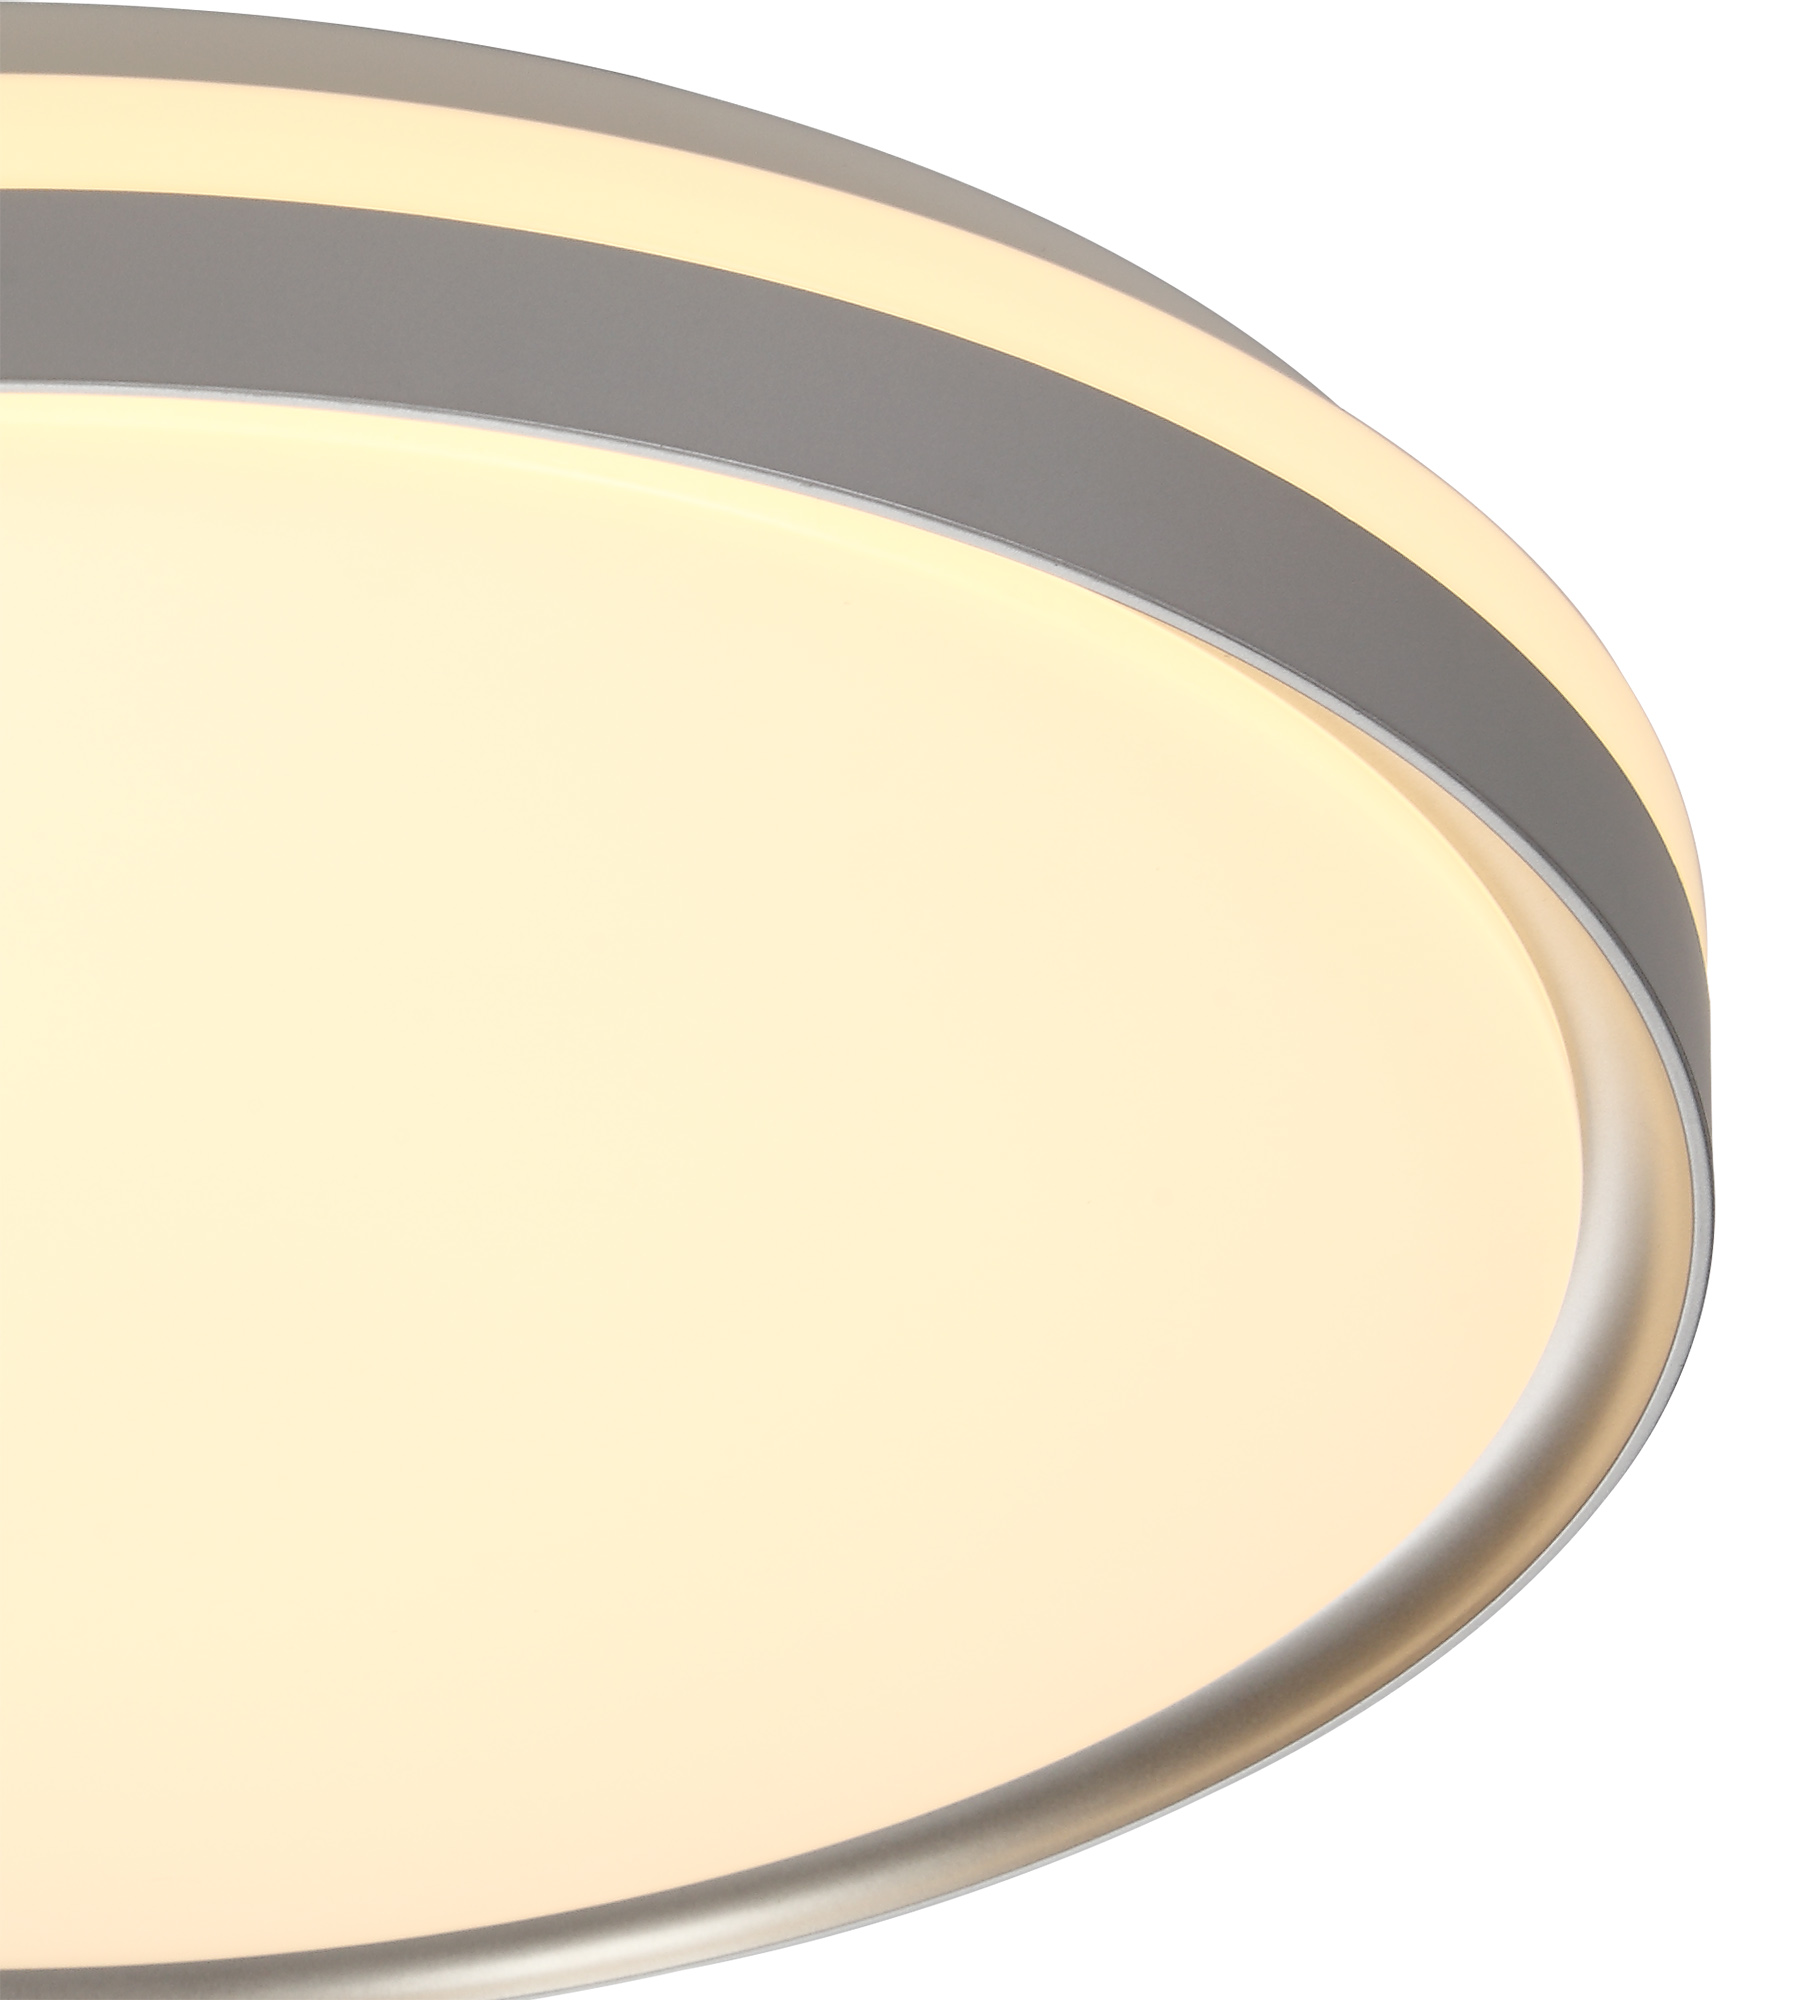 Ceiling 48cm, 1 x 36W LED 3 Step-Dimmable, 3000K, 1575lm, IP44, Silver/White Acrylic, 3yrs Warranty